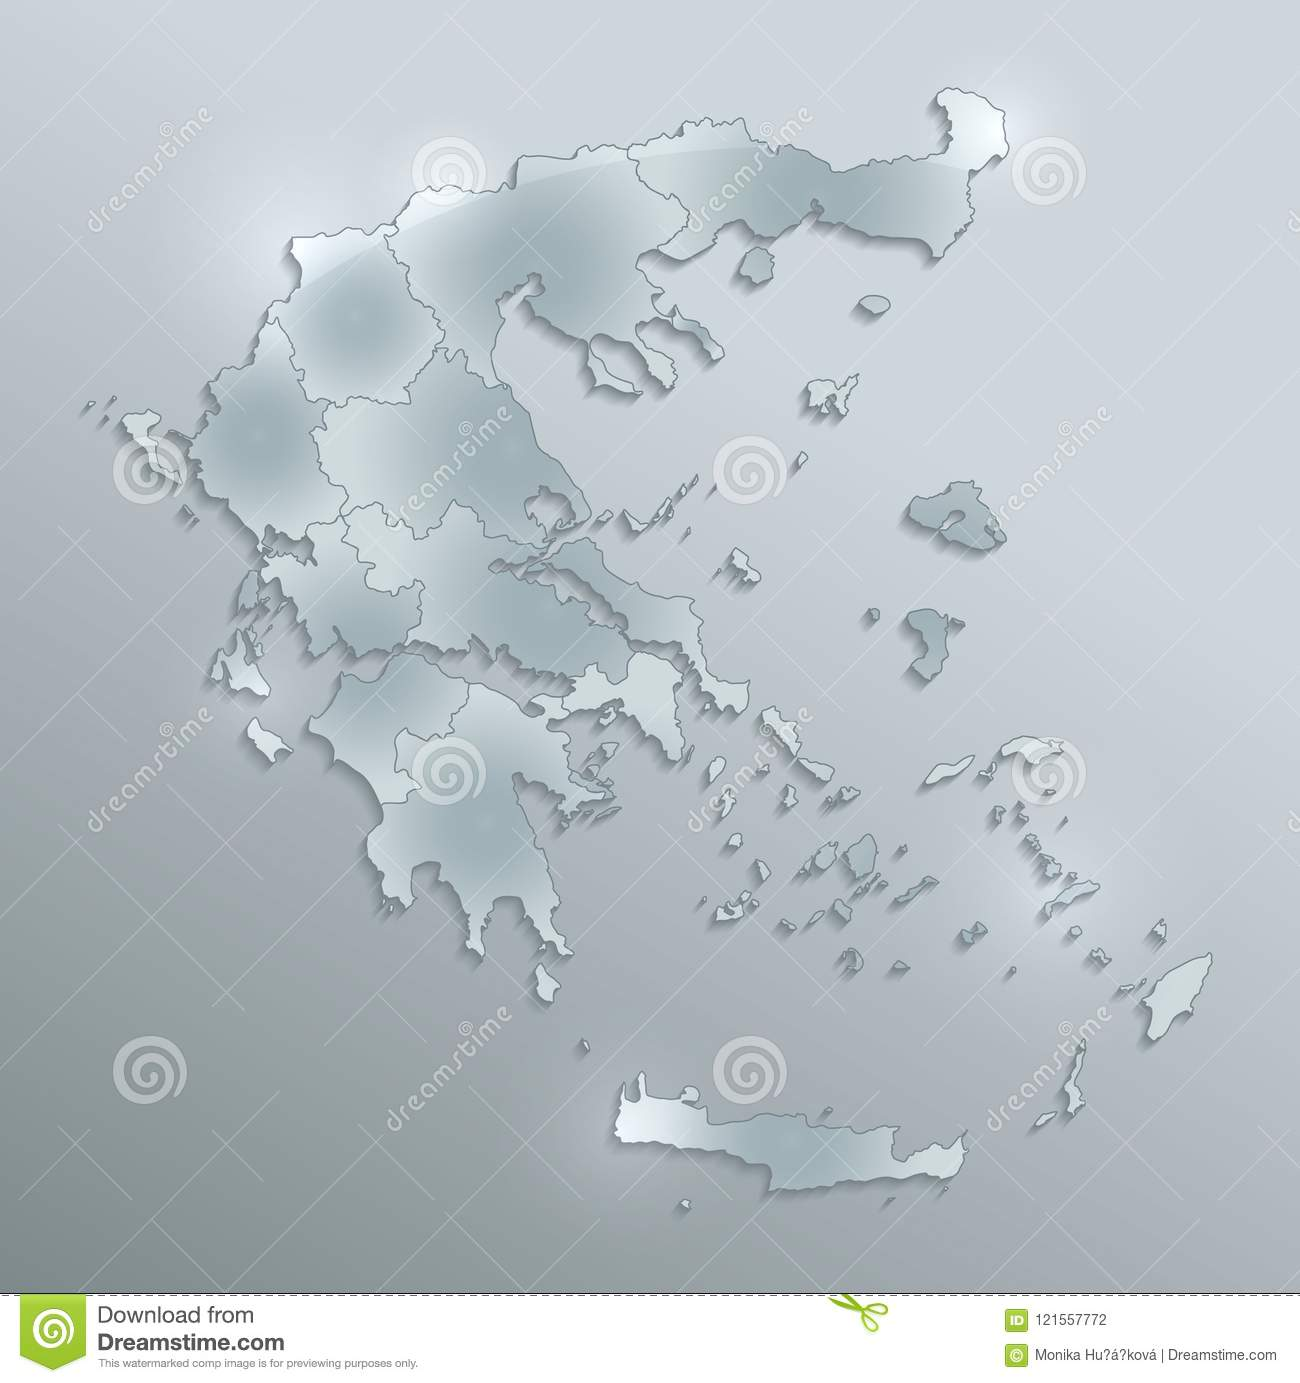 Greece Map Blank.Greece Map Separate Region Individual Blank Glass Card 3d Raster